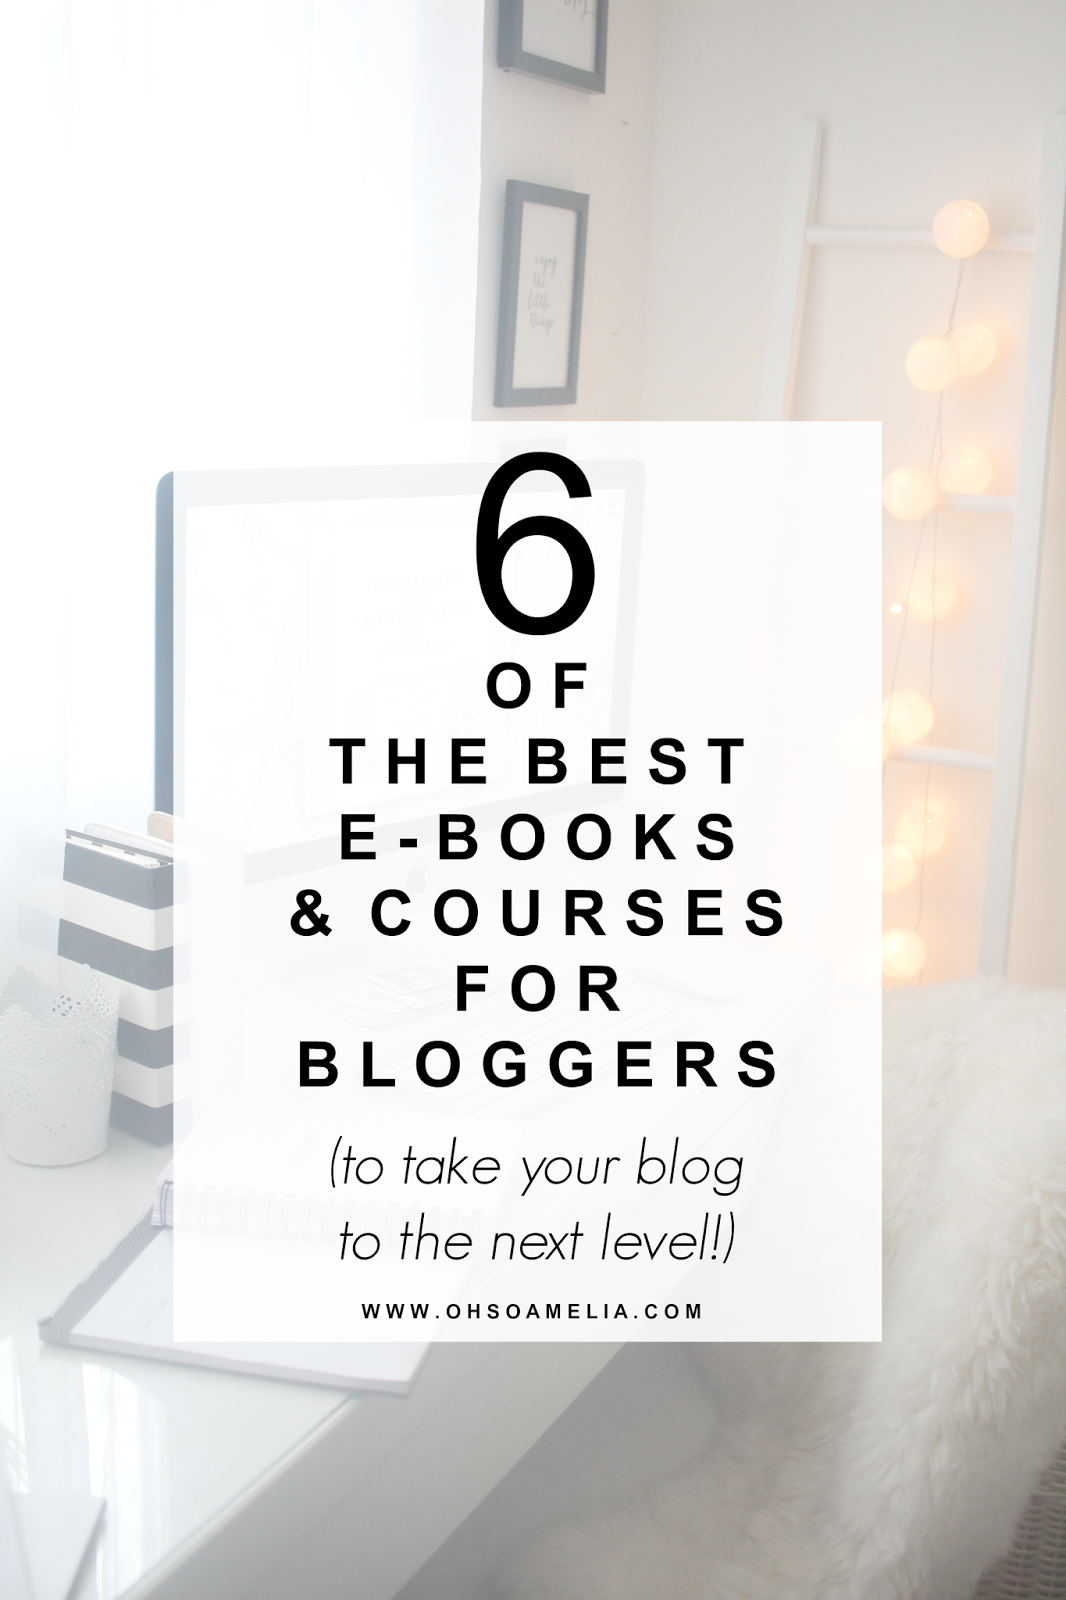 6 Of The Best E-Books And Courses For Bloggers (To Take Your Blog To The Next Level)